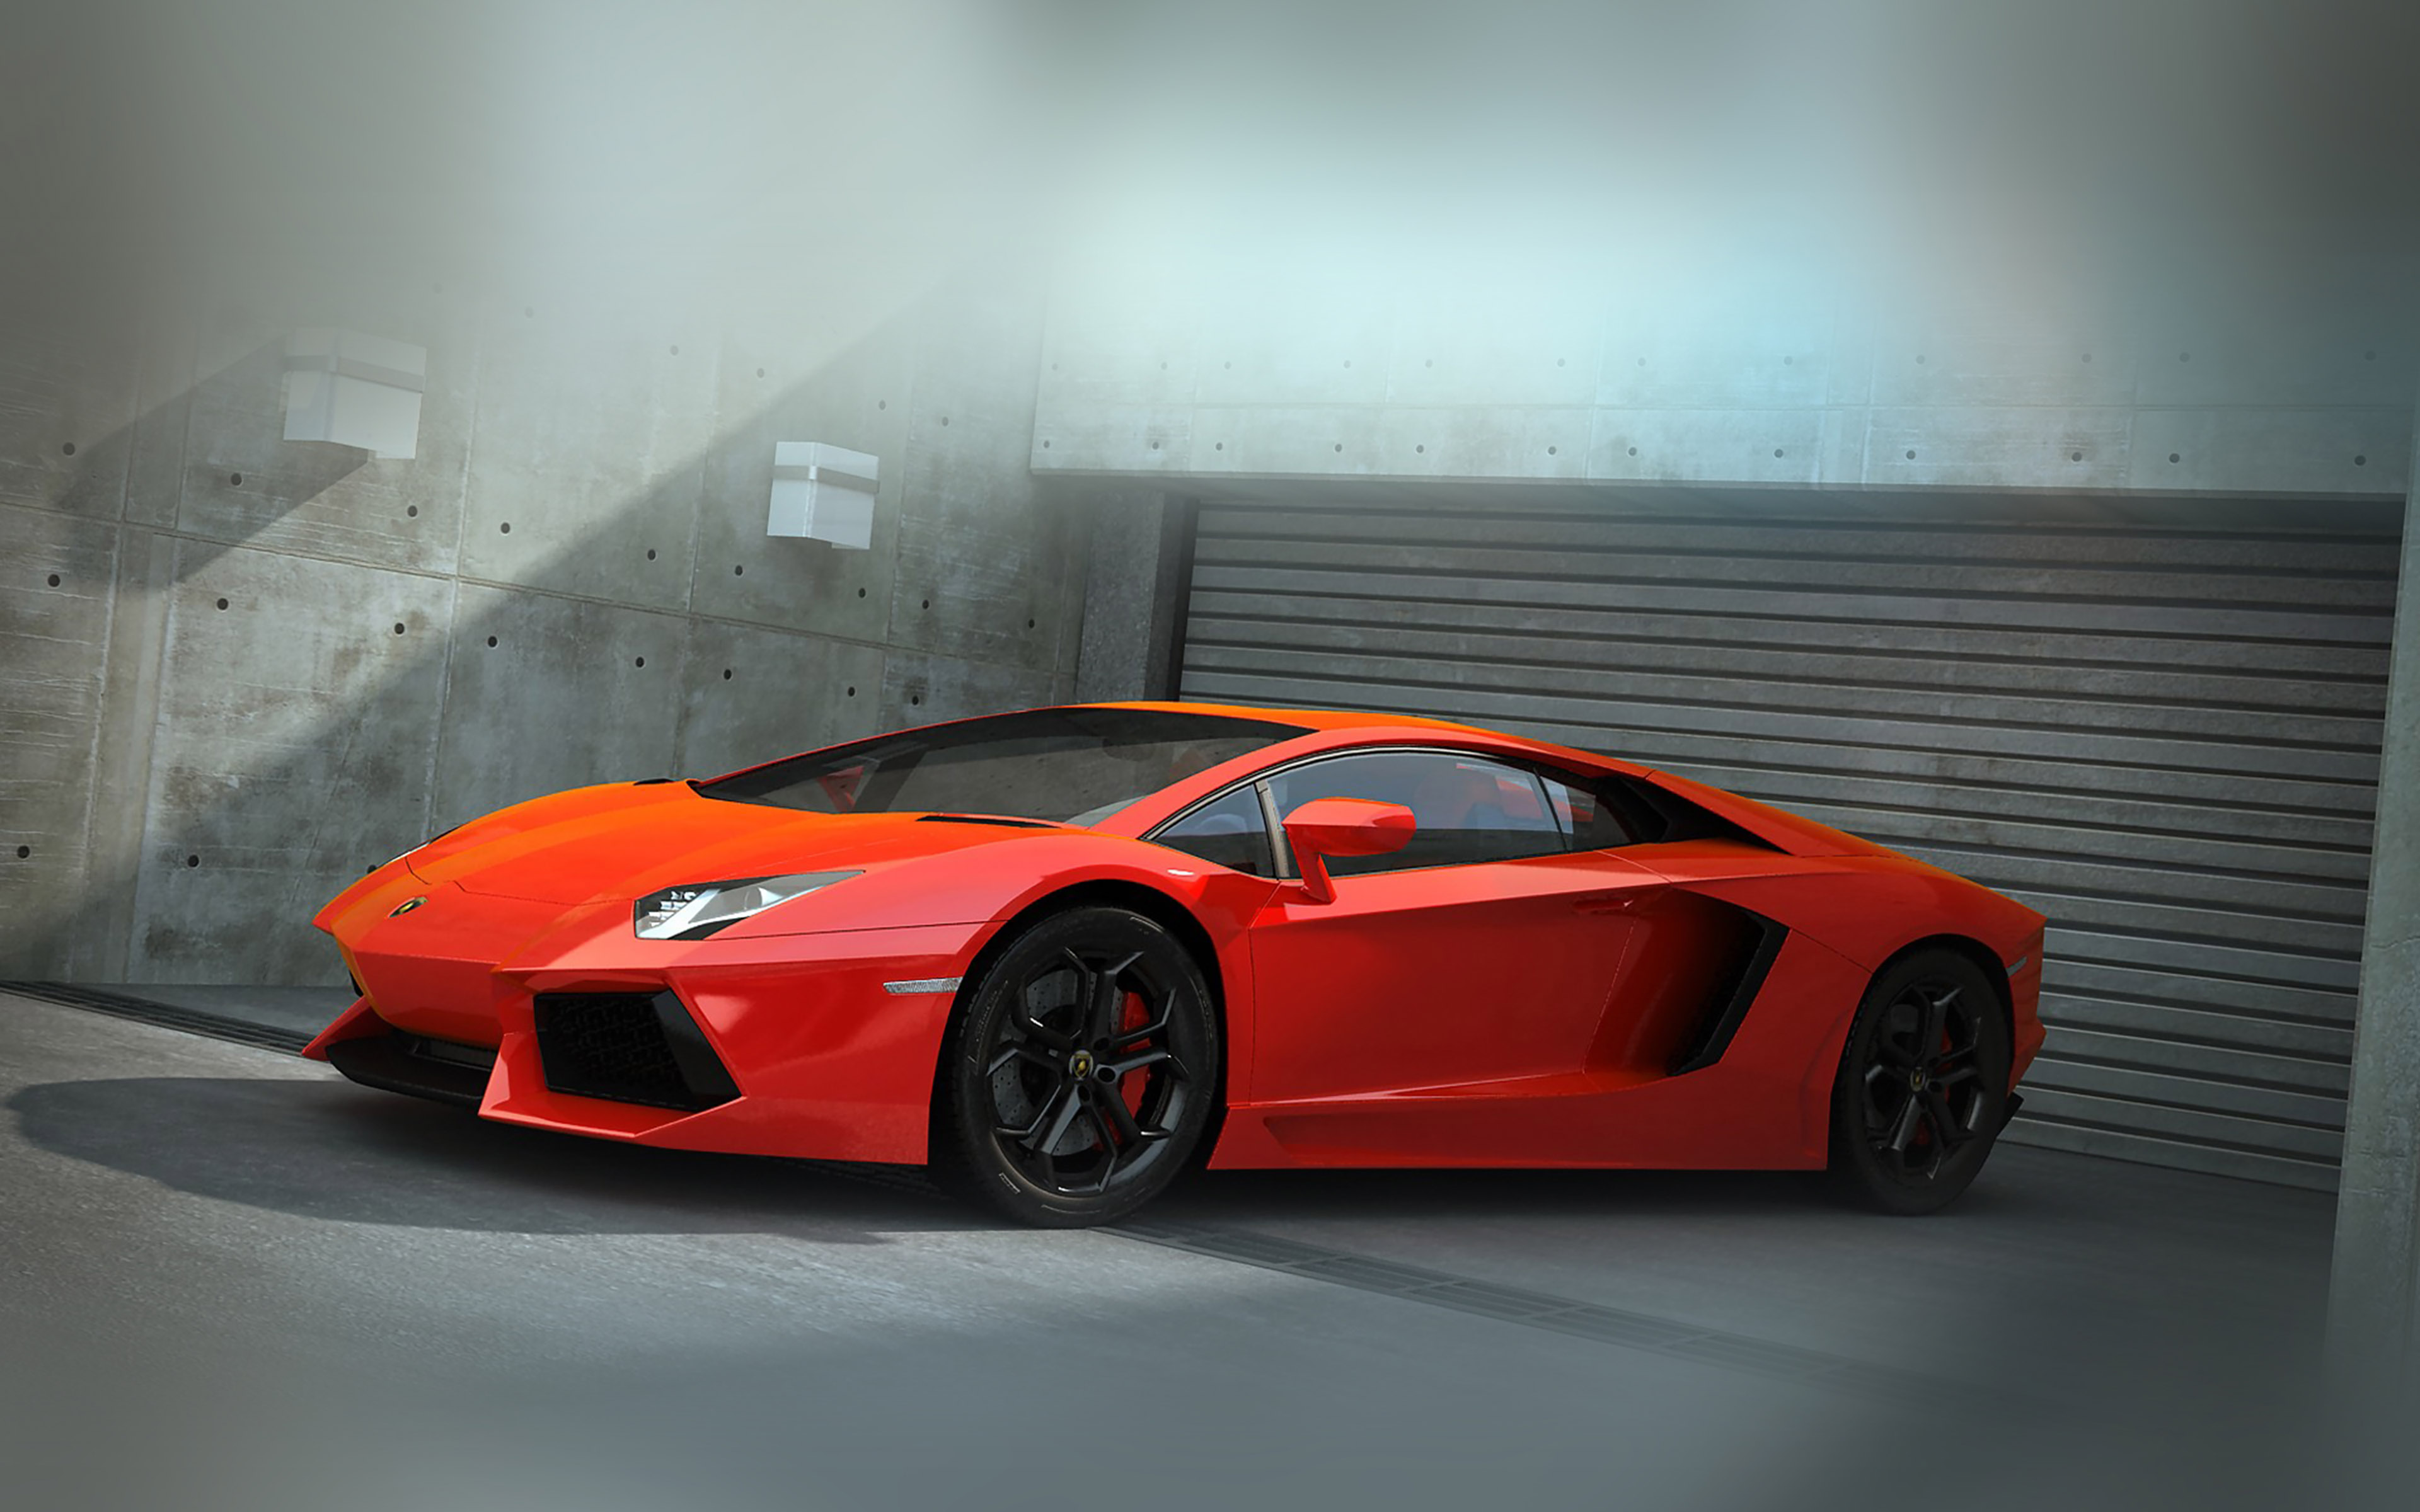 Apple Iphone 5 Wallpapers Hd Free Download Ai89 Red Lamborghini Parked Car Art Papers Co